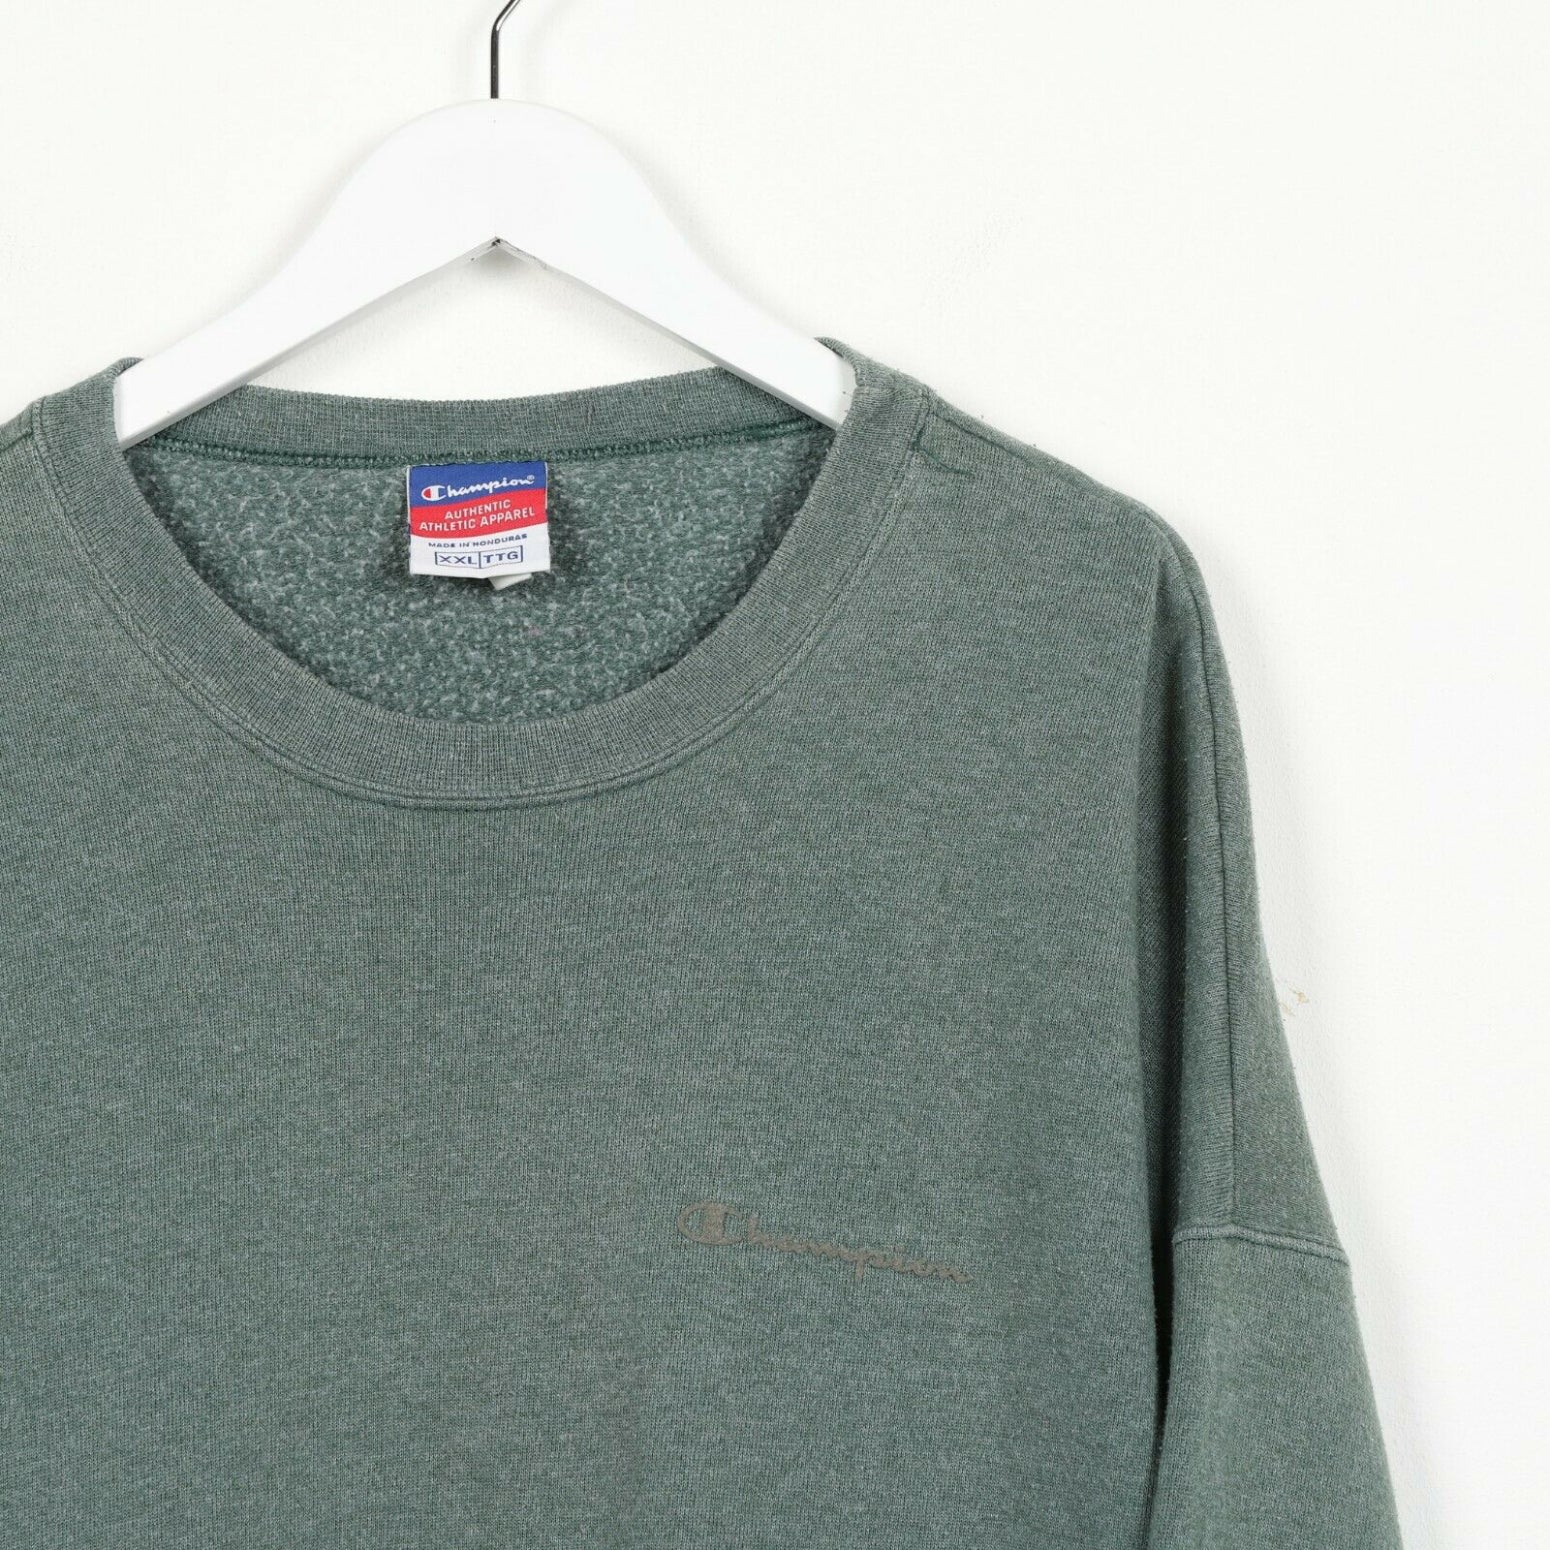 Vintage CHAMPION Small Logo Sweatshirt Jumper Green | 2XL